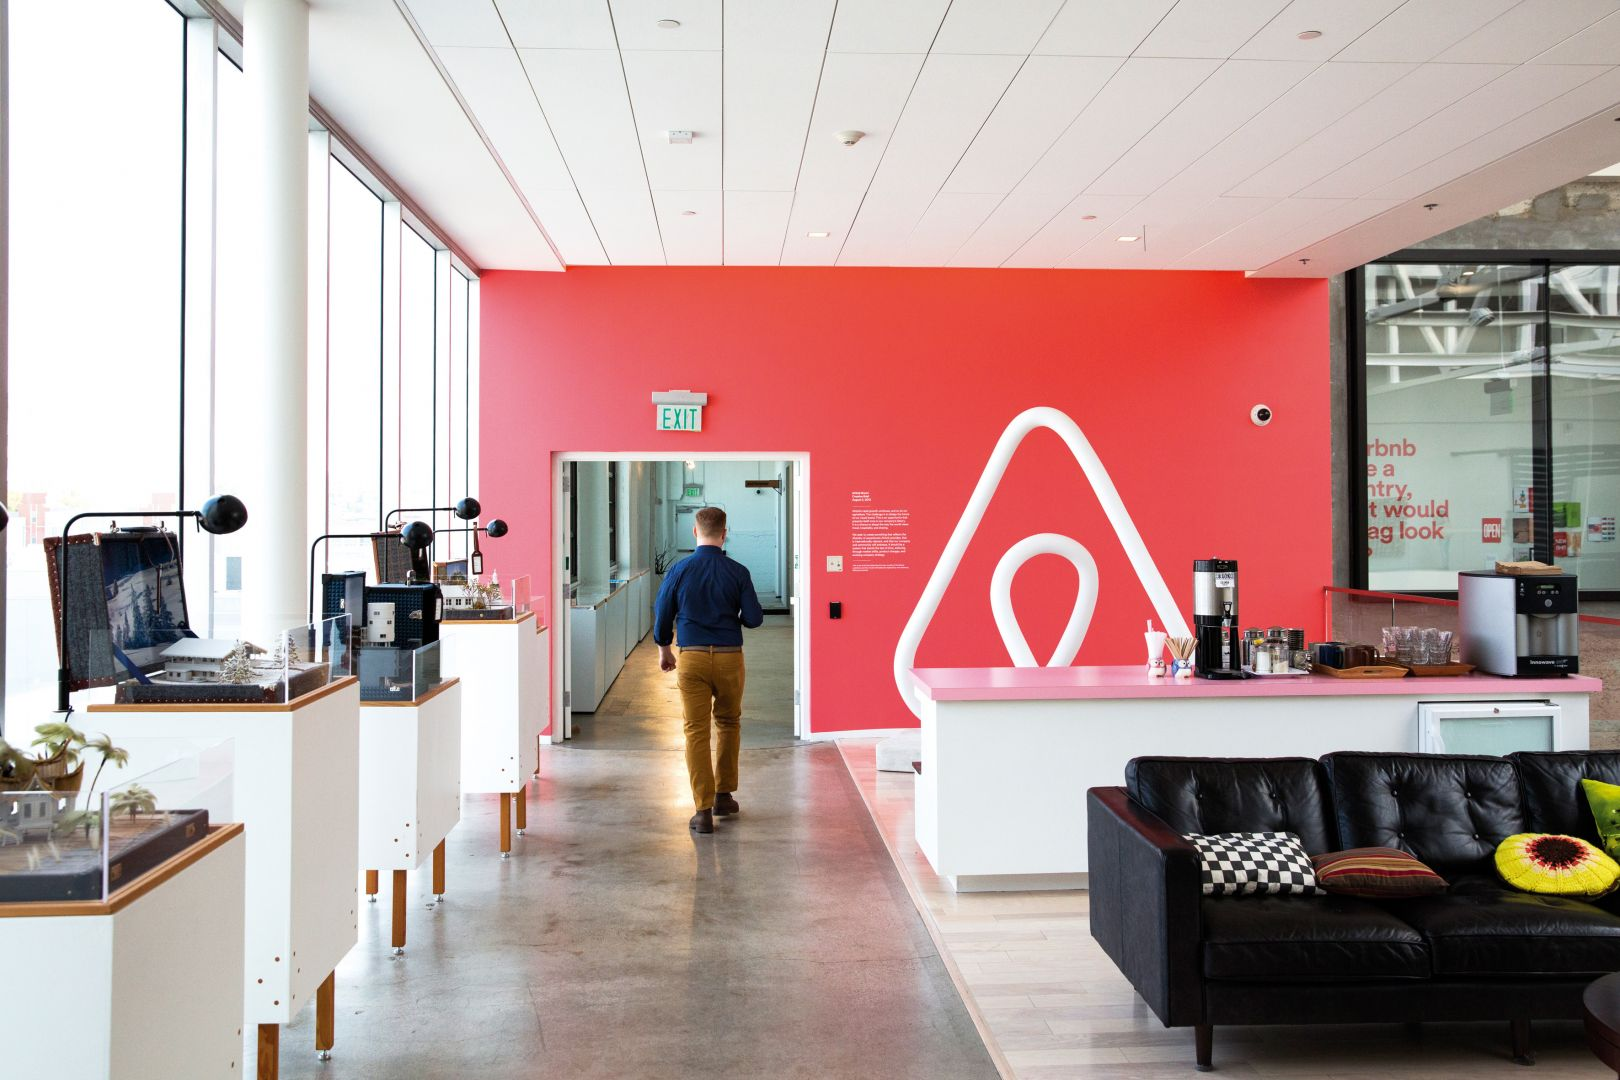 s immigration ban airbnb offers free residence to